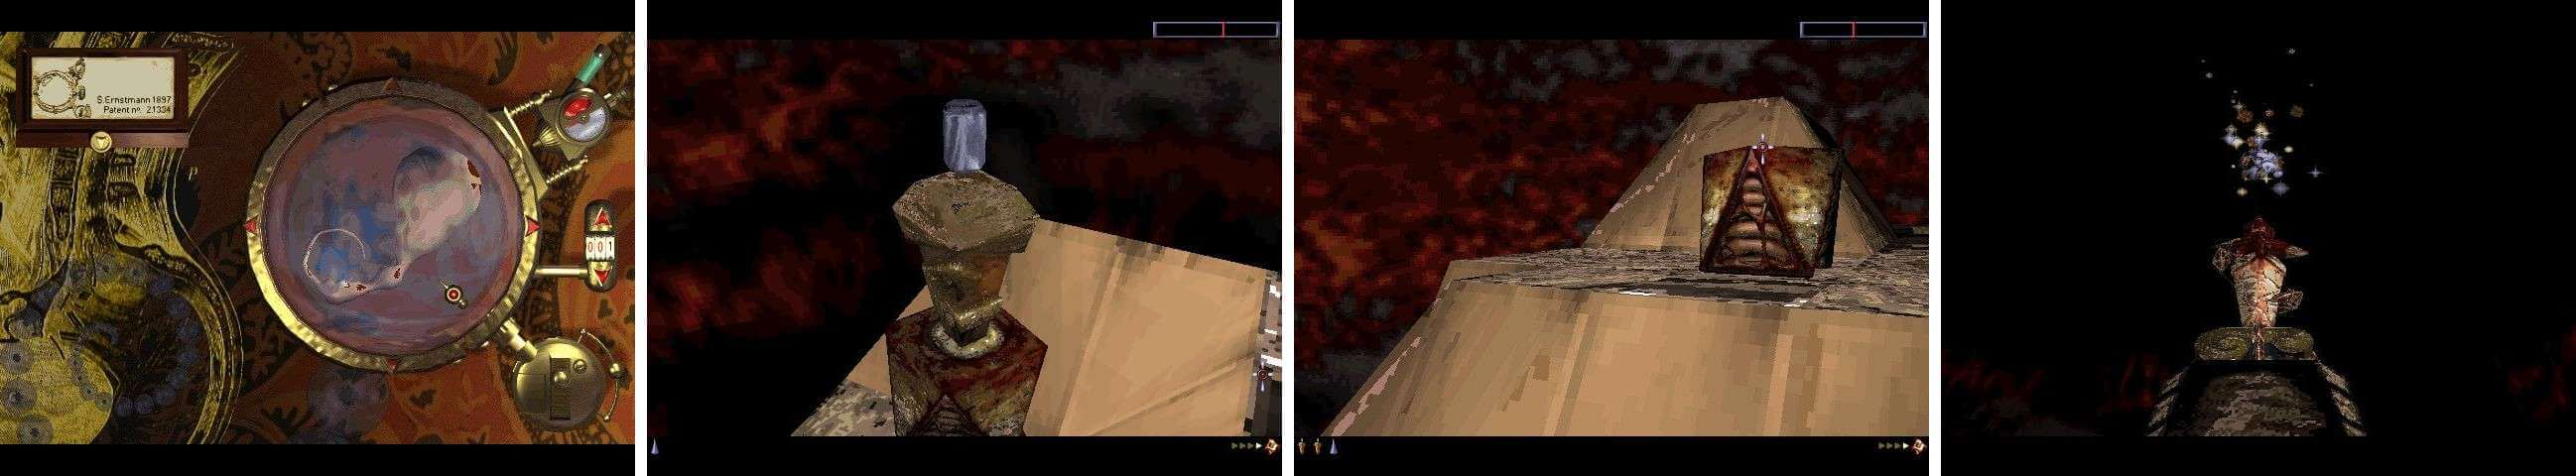 """PC screenshots  **Levels and music**   It features 651 levels, a multiplayer mode and a soundtrack (titled """"Earth/Air"""") composed by John Carpenter famous horror movie director and music composer, and arranged by Gary McKill.  **PC version**   The PC version has native support limited to a software display mode and an accelerated Glide mode, because in 1998, 3DFX cards were the de facto standard for gaming 3D graphics. However, modern computers can run the game in accelerated mode with the wrappers nGlide, dgVoodoo, OpenGlide or zeckensack's Glide wrapper, which translate Glide calls respectively into Direct3D or OpenGL calls.  **Endings**   The game has two endings. To see the first one, the player must beat the 651st level. To see the second one, the player must beat every level, or """"achieve 100% orchid"""", as this is expressed in the game."""